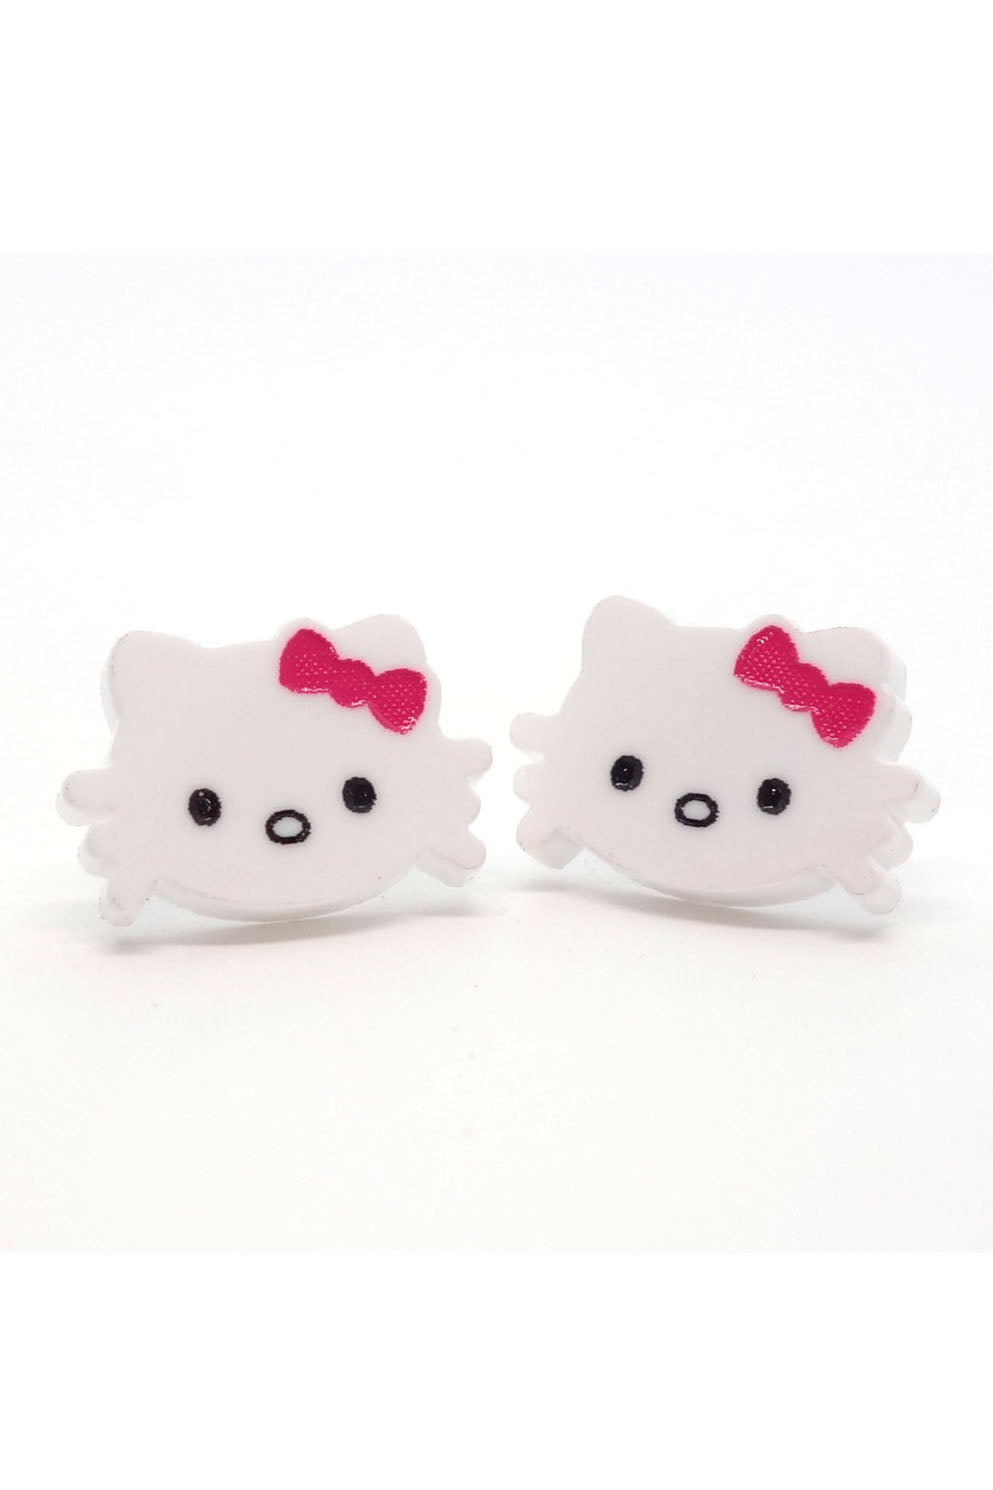 Lili0485 Hello Kitty Acrylic Earrings